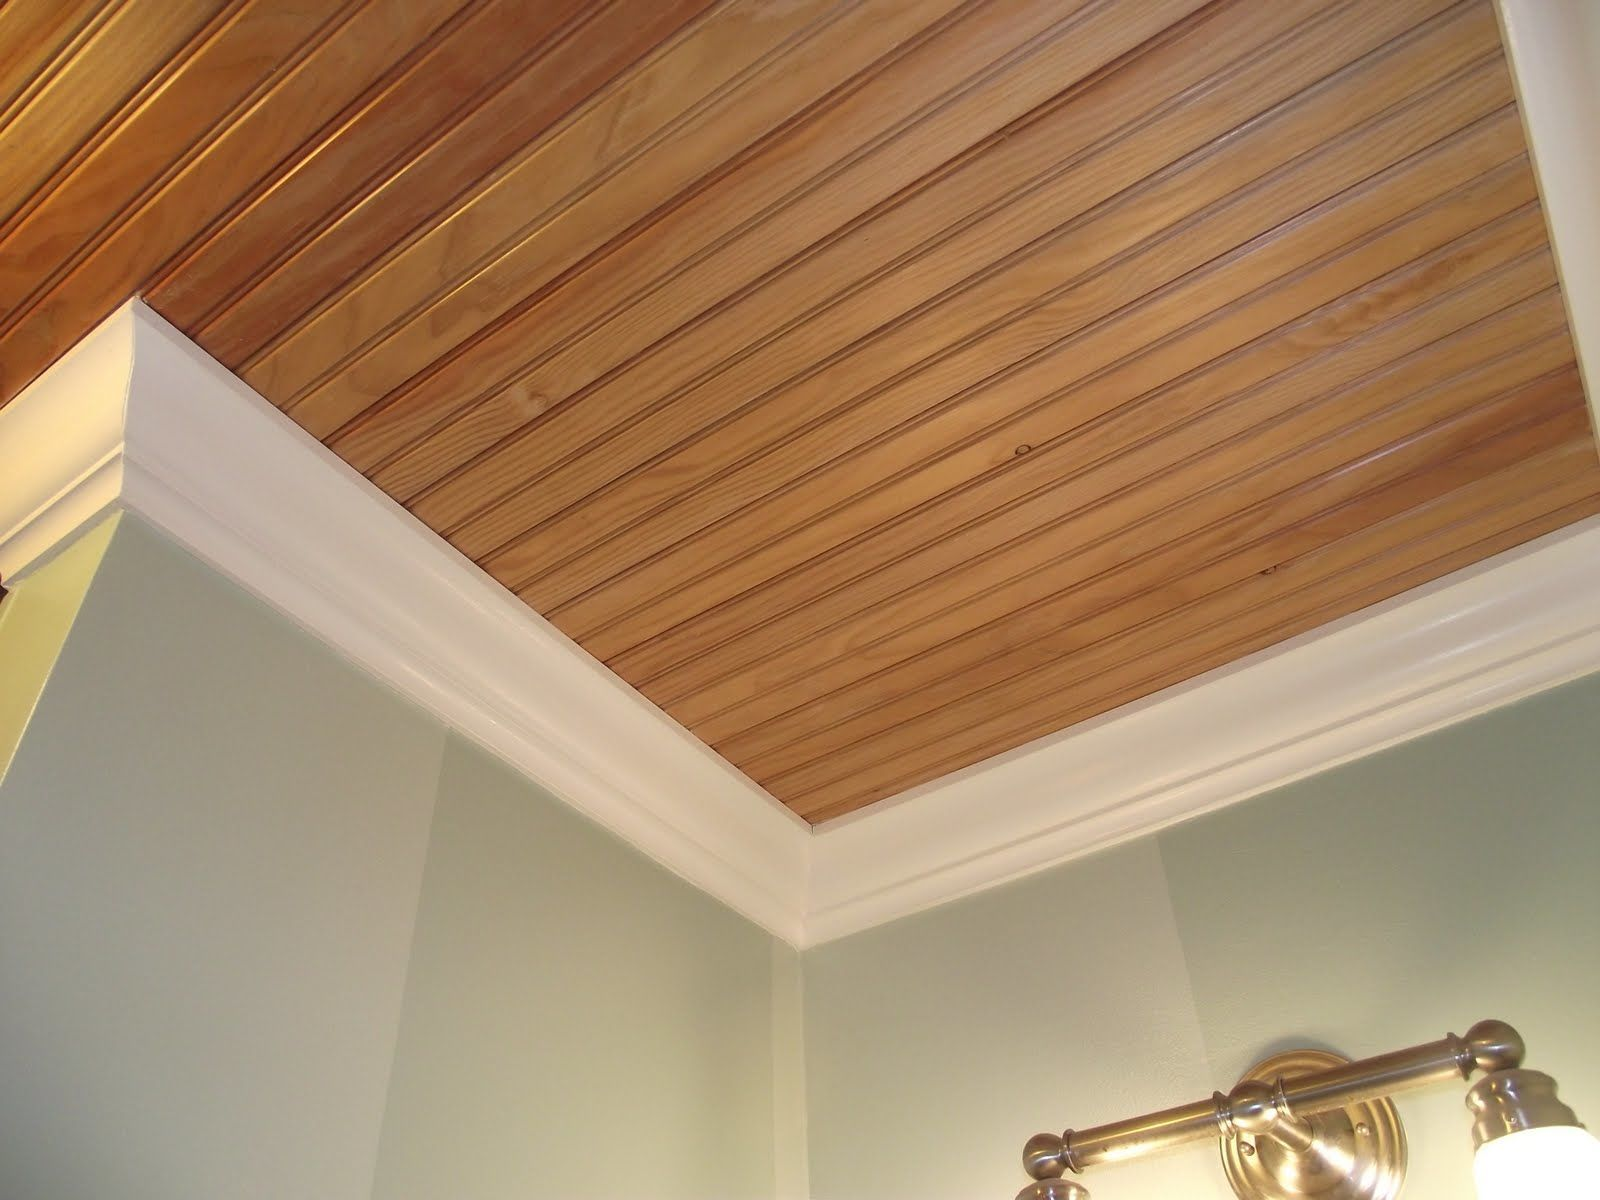 How To Installing A Beadboard Porch Ceiling Beadboard Ceiling Beadboard Vinyl Beadboard